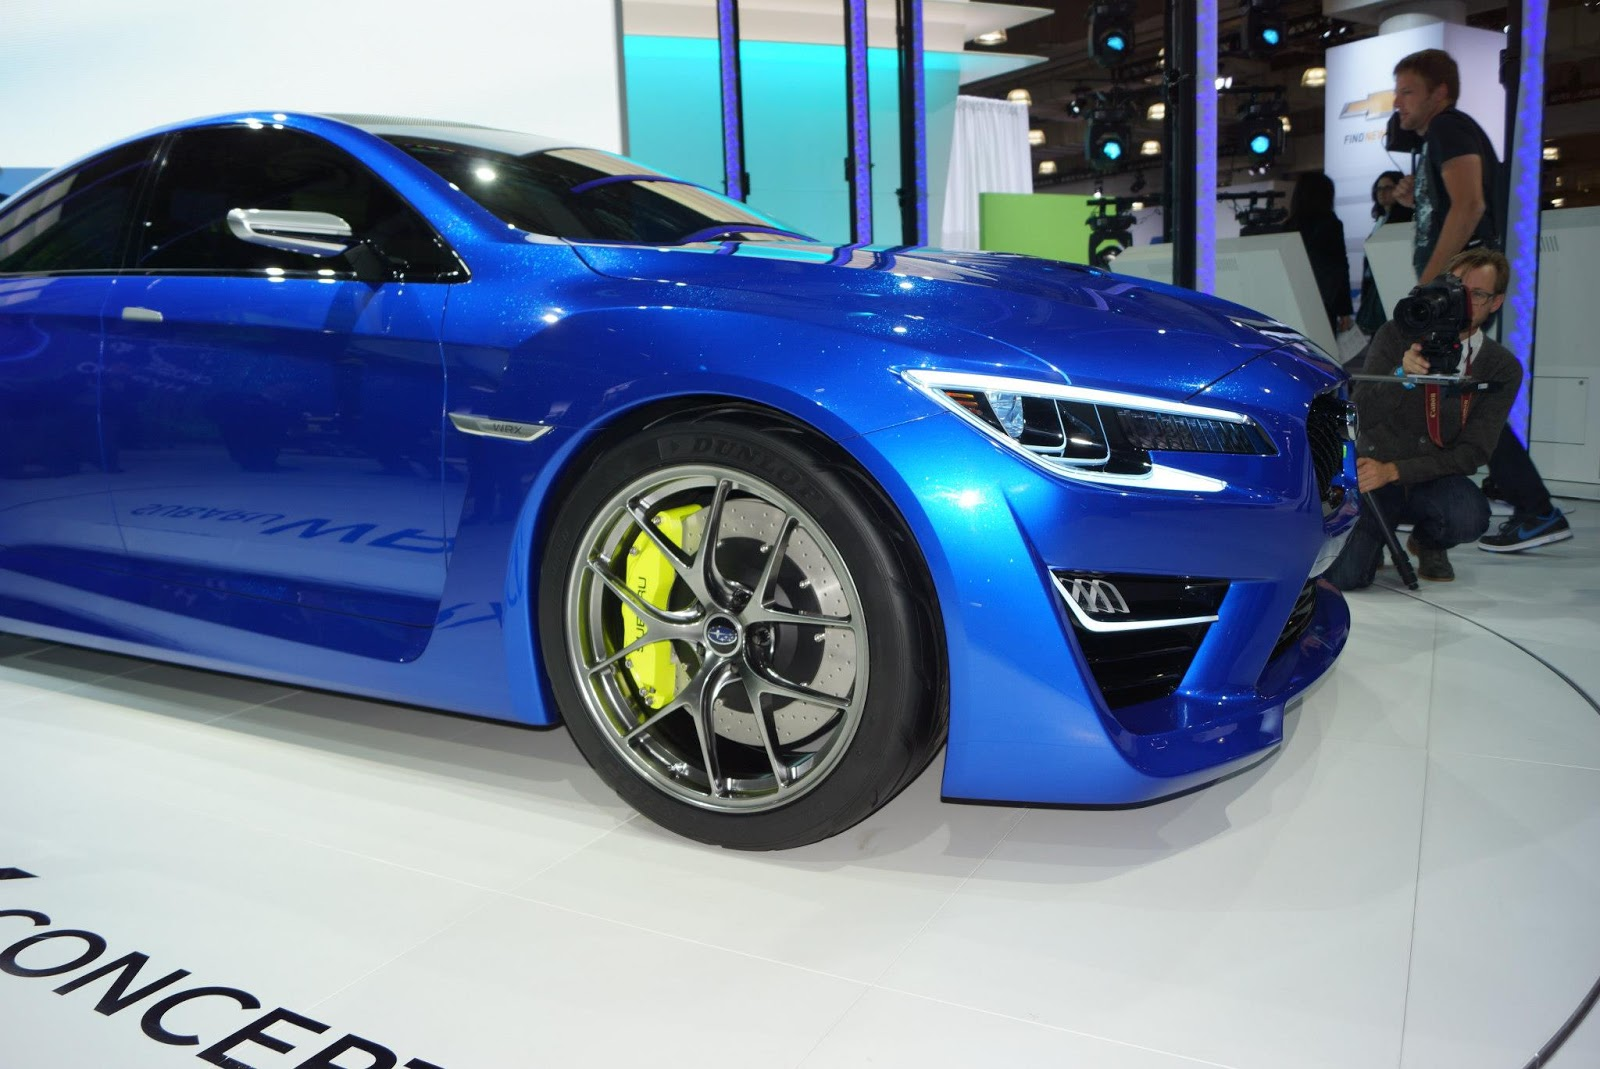 speedmonkey subaru wrx concept images from new york auto show. Black Bedroom Furniture Sets. Home Design Ideas